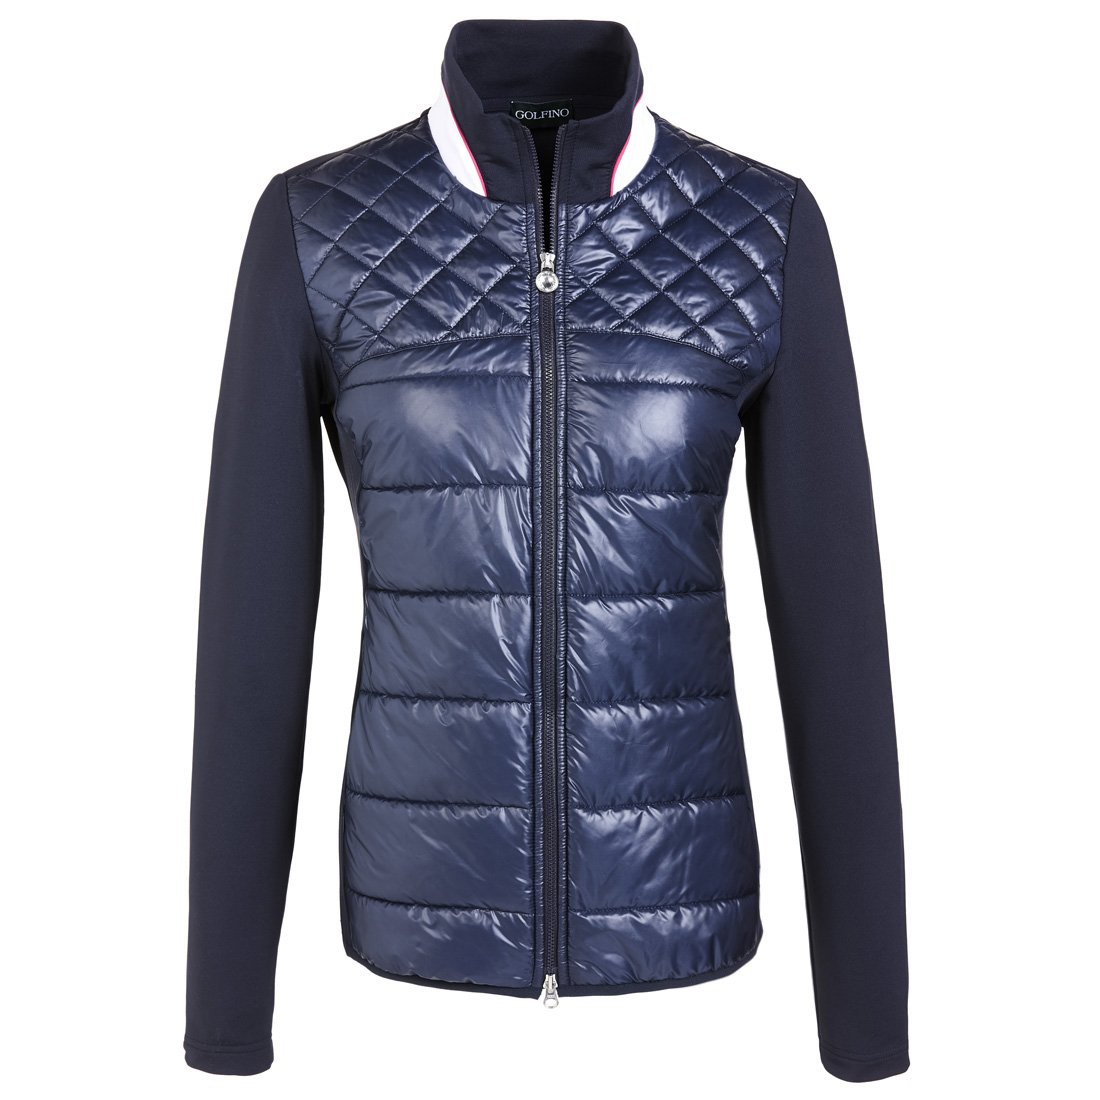 Ladies' quilted golf jacket with light stretch sleeves